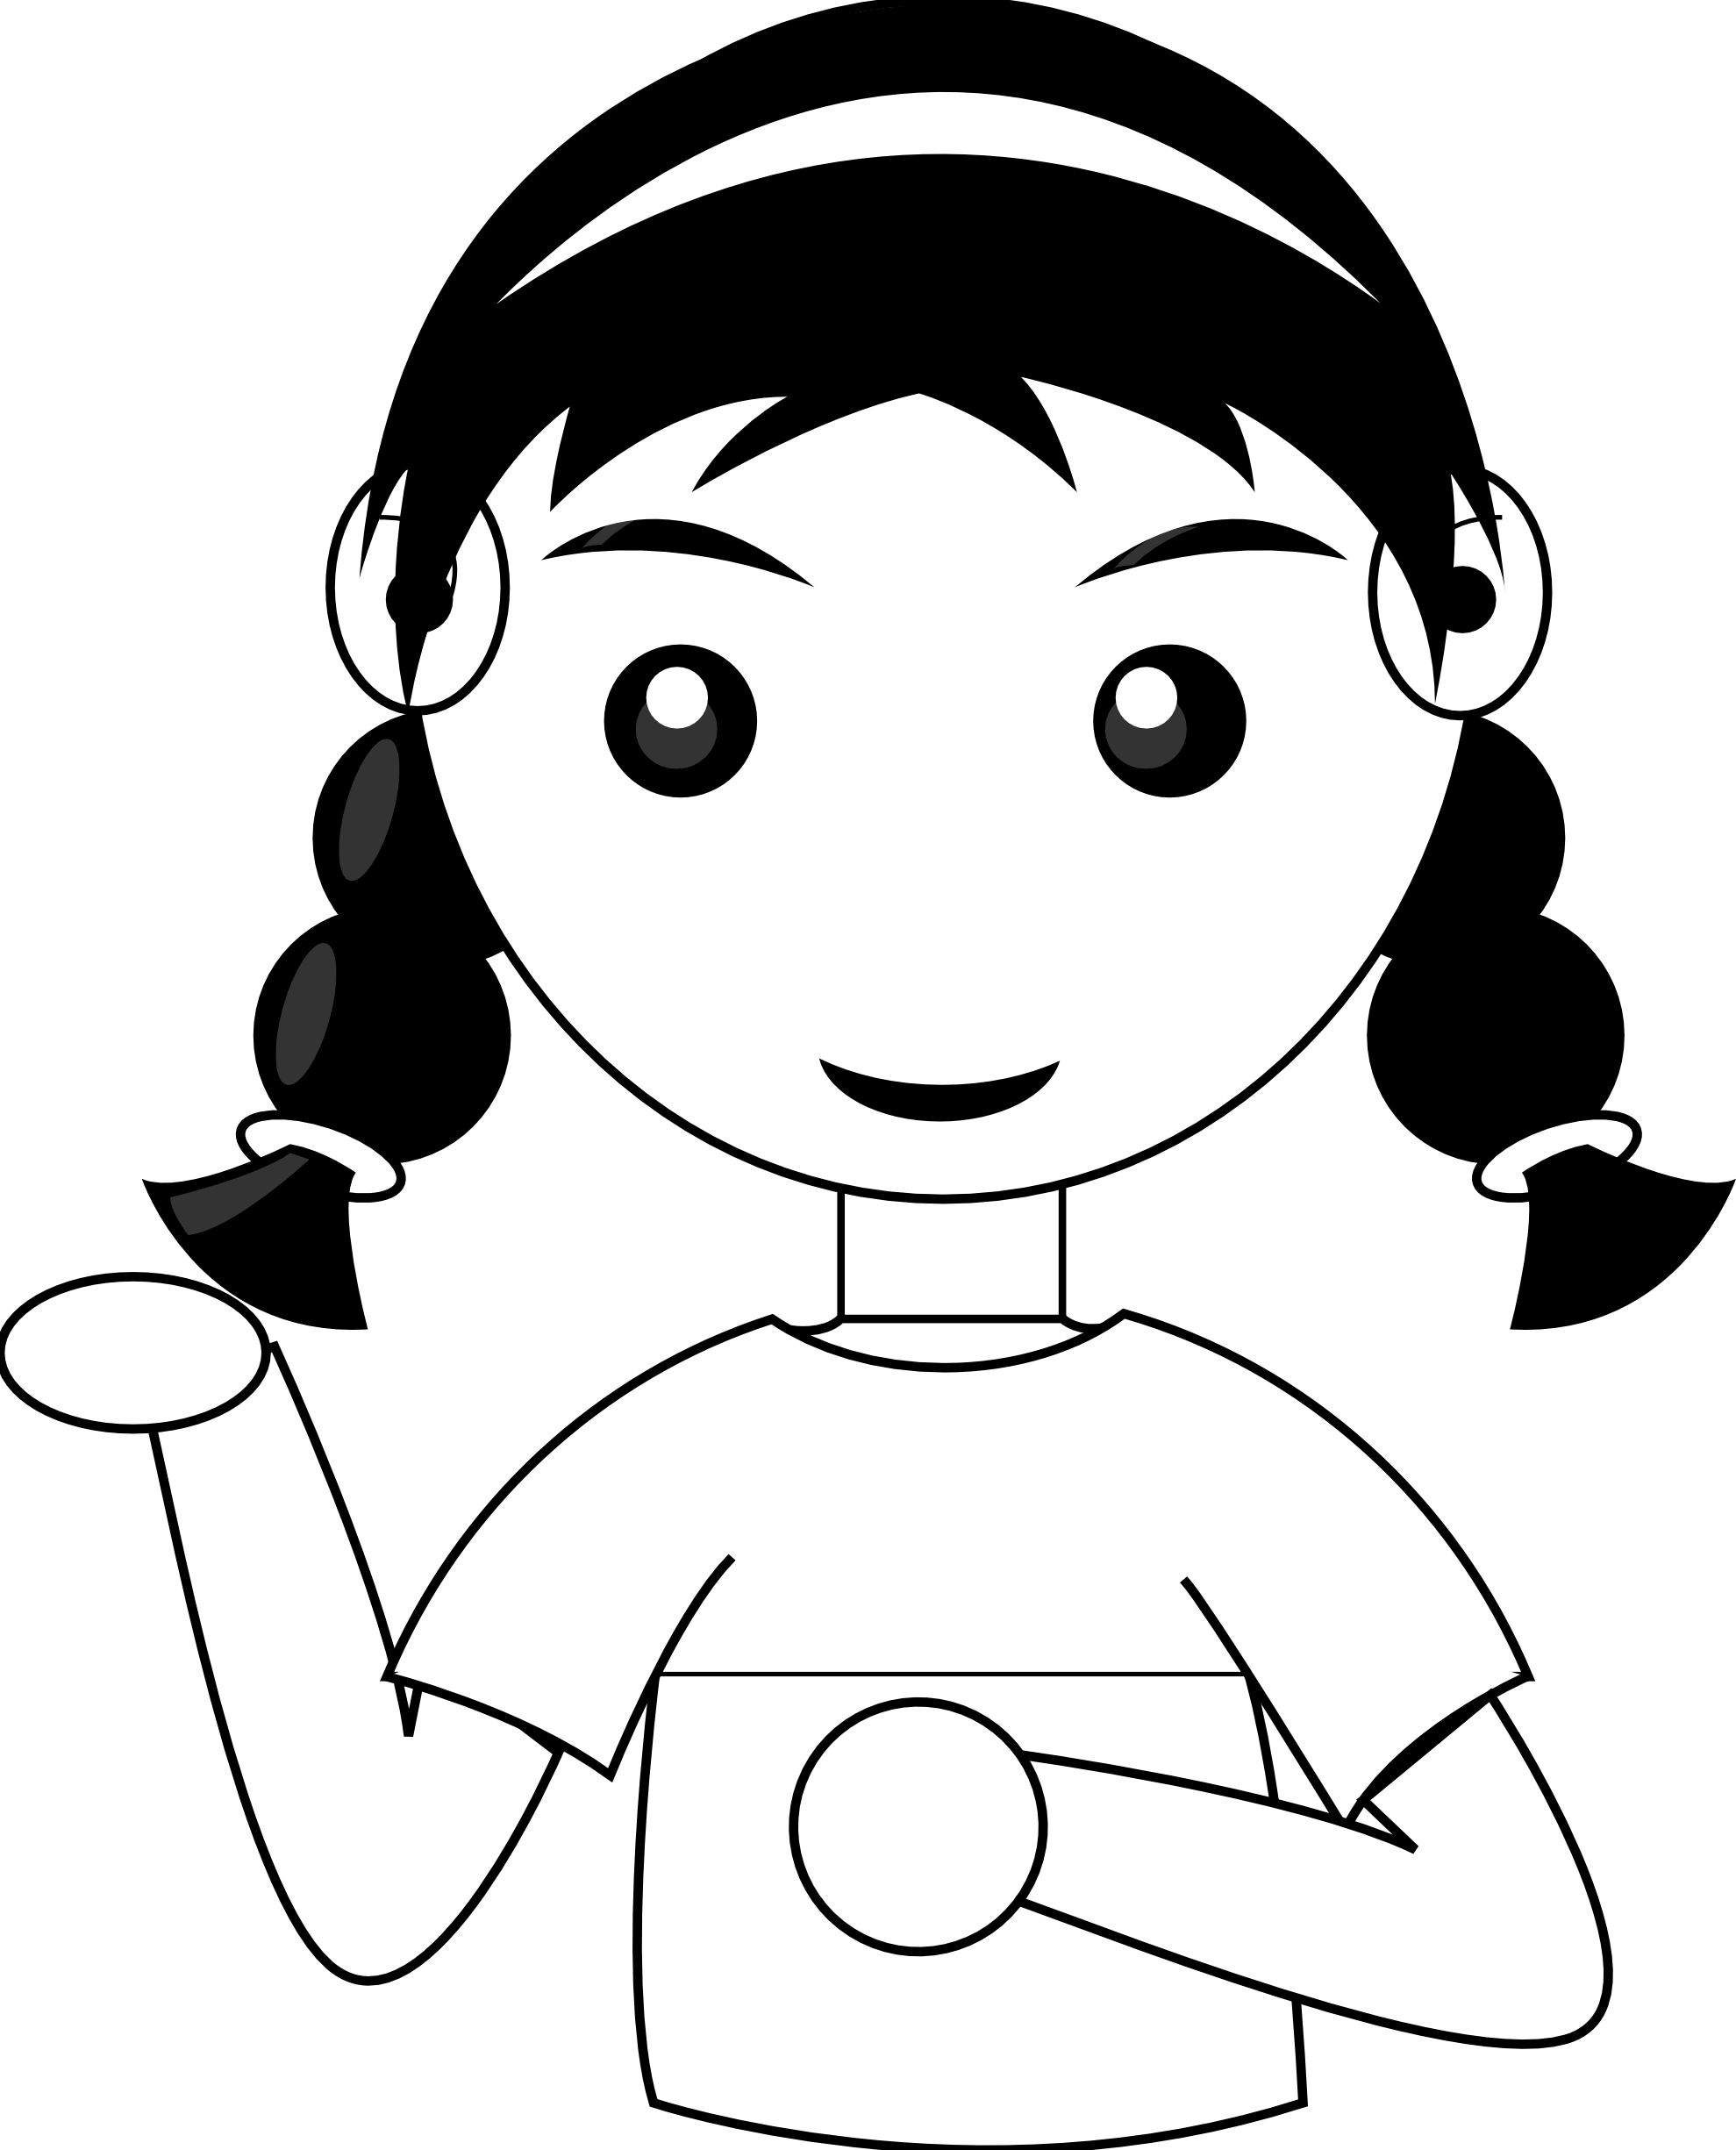 Sister clipart transparent. Siblings png black and